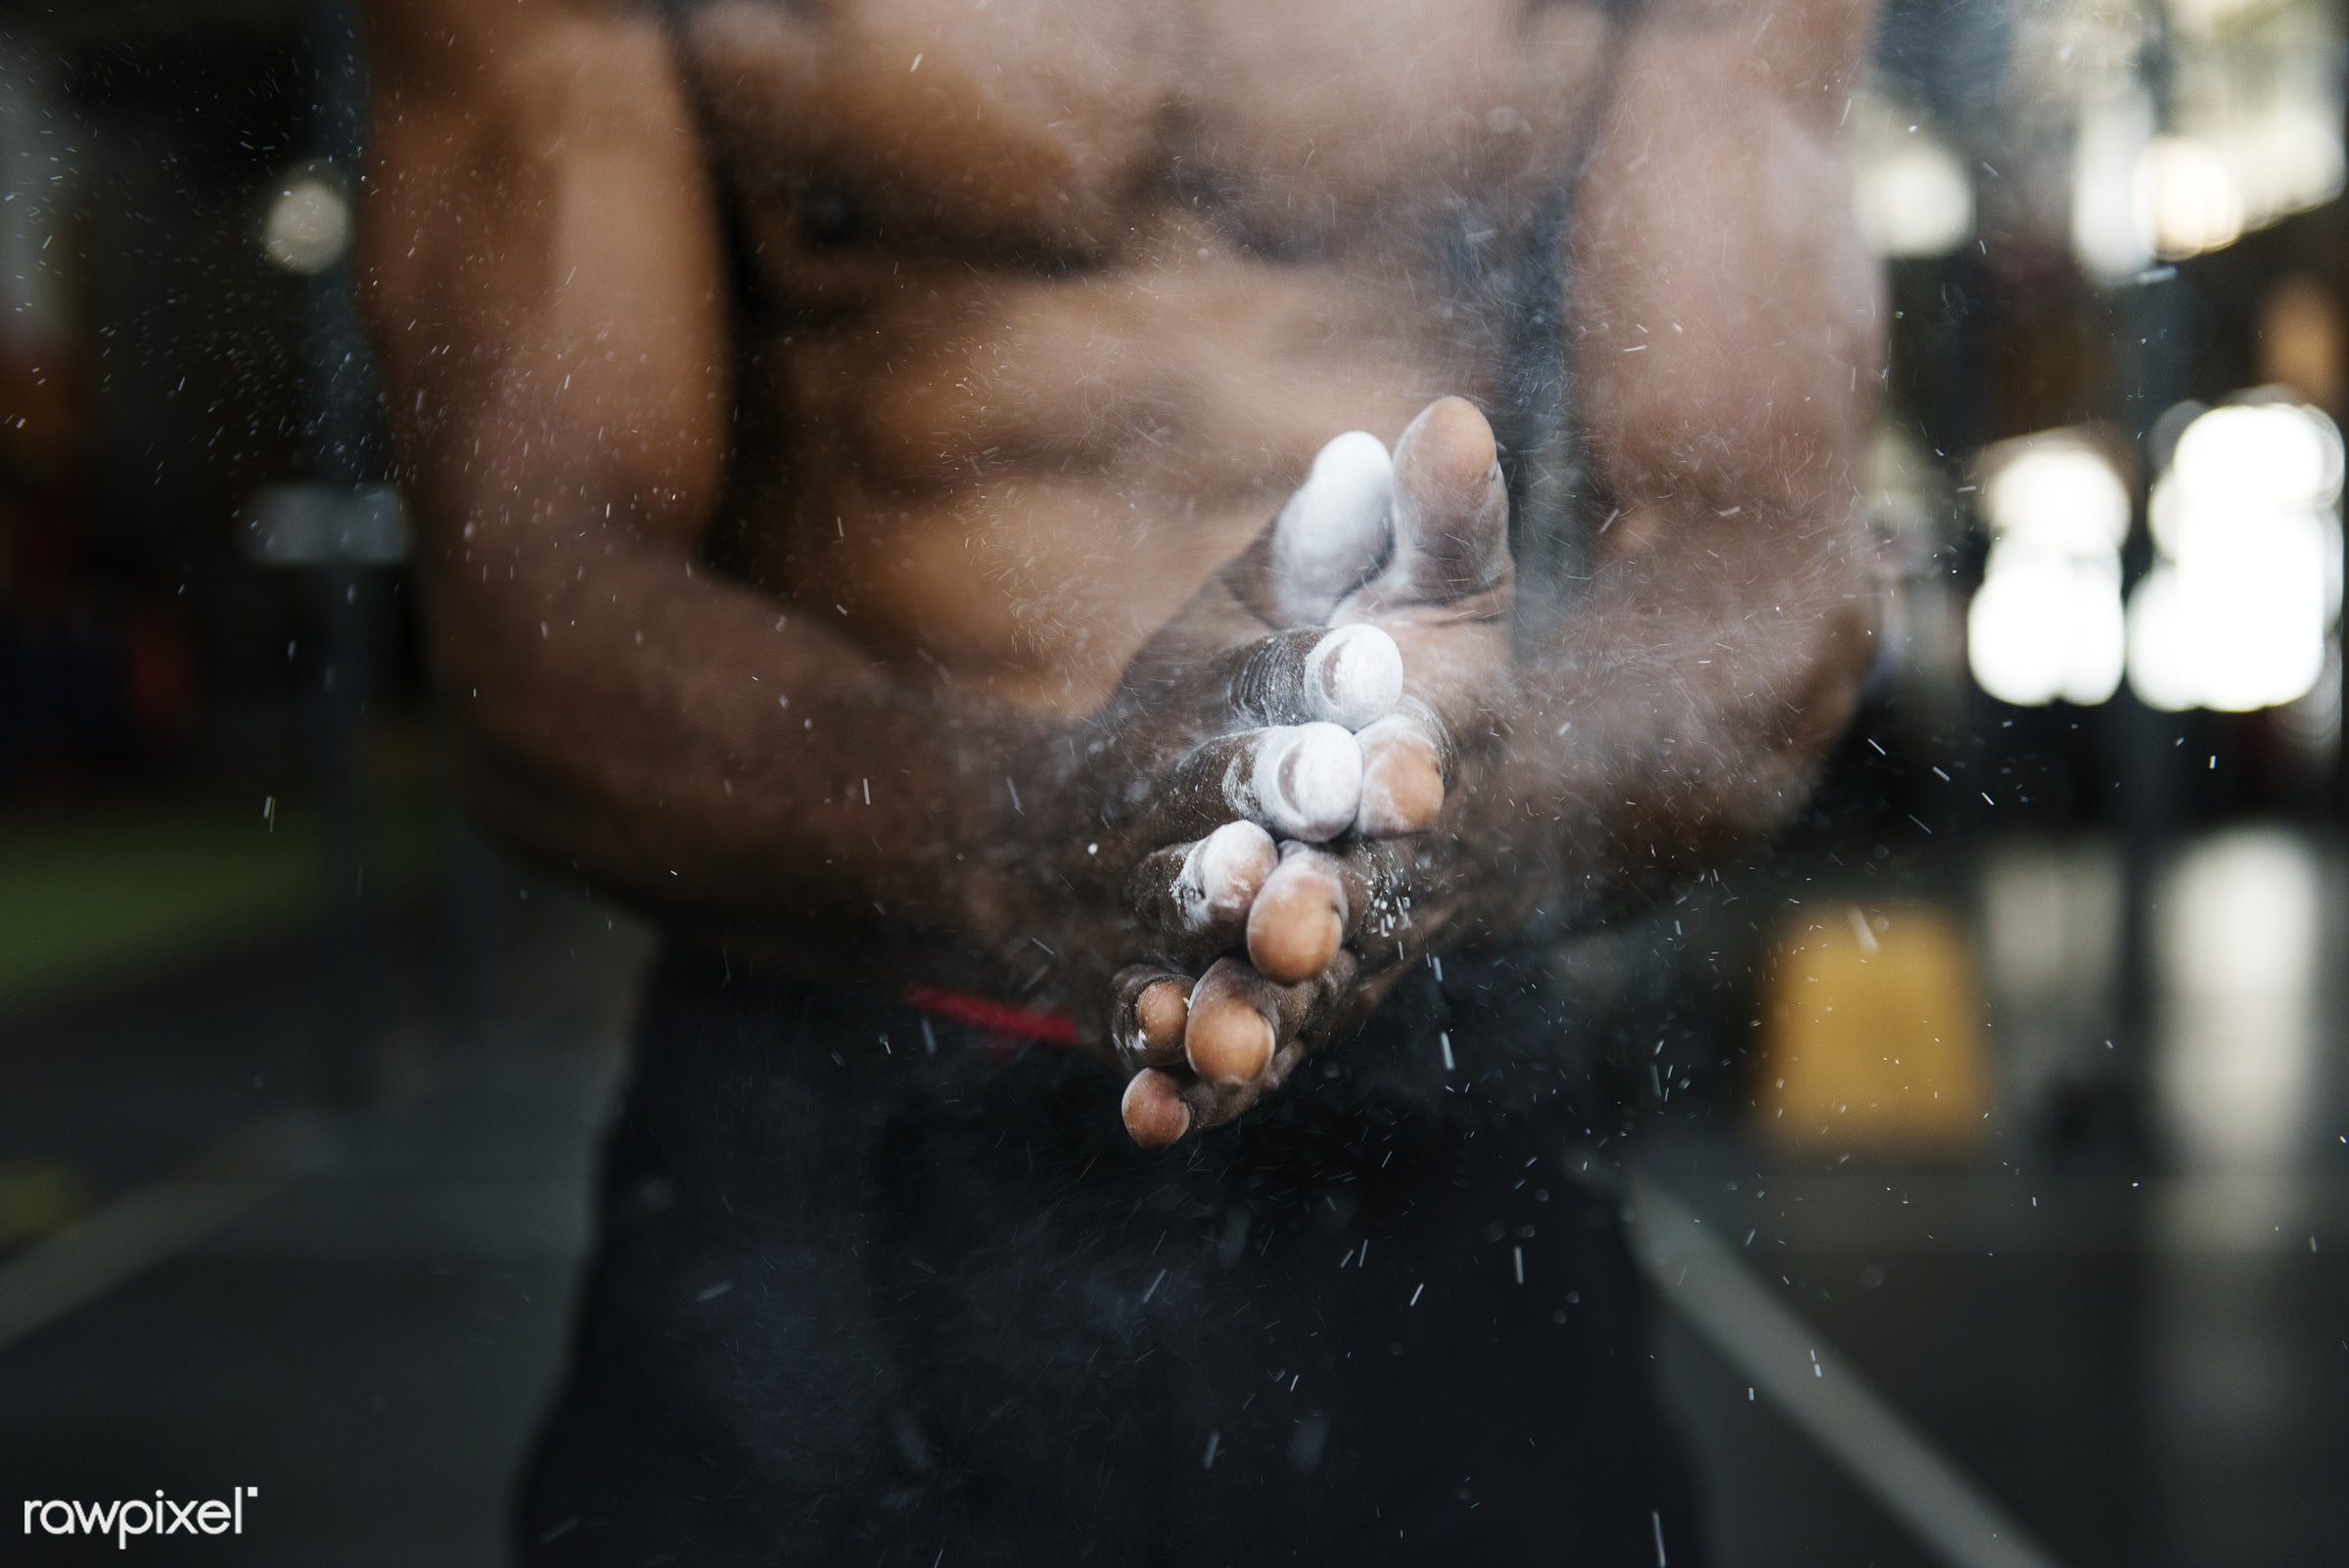 Muscle man at the gym - active, activity, african descent, athlete, athletic, attractive, body, buff, fit, fitness, gym,...